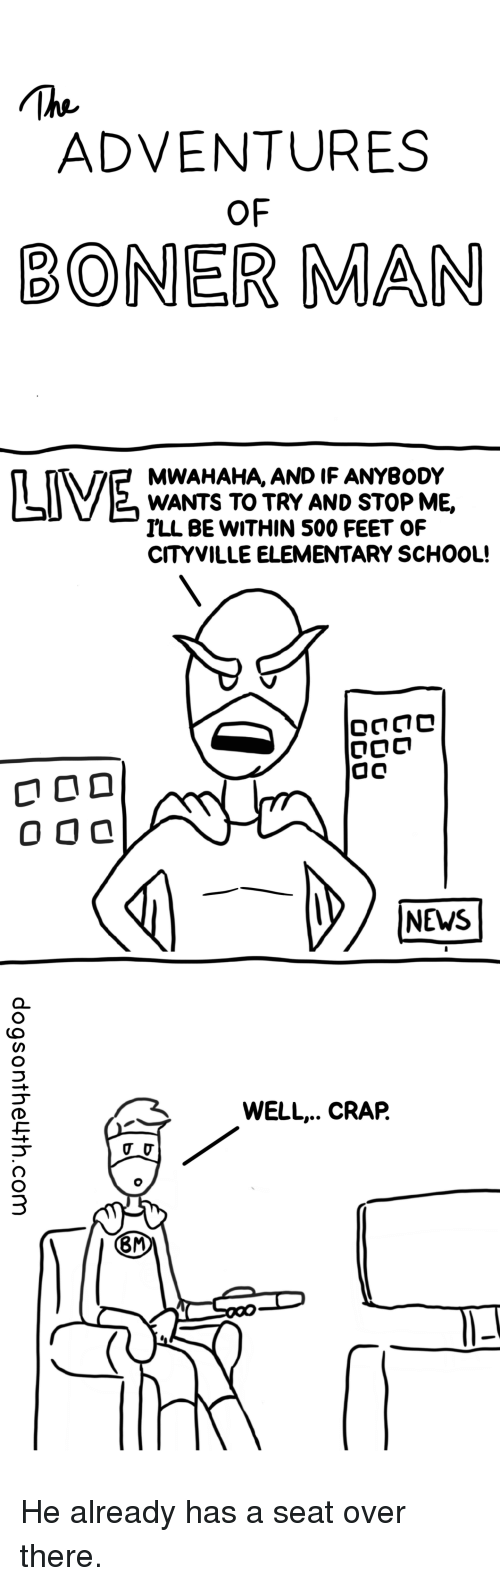 News, School, and Elementary: ADVENTURES  OF  BONER MAN  MWAHAHA, AND IF ANYBODY  WANTS TO TRY AND STOP ME,  ILL BE WITHIN 500 FEET OF  CITYVILLE ELEMENTARY SCHOOL!  NEWS  WELL.. CRAP.  8M He already has a seat over there.